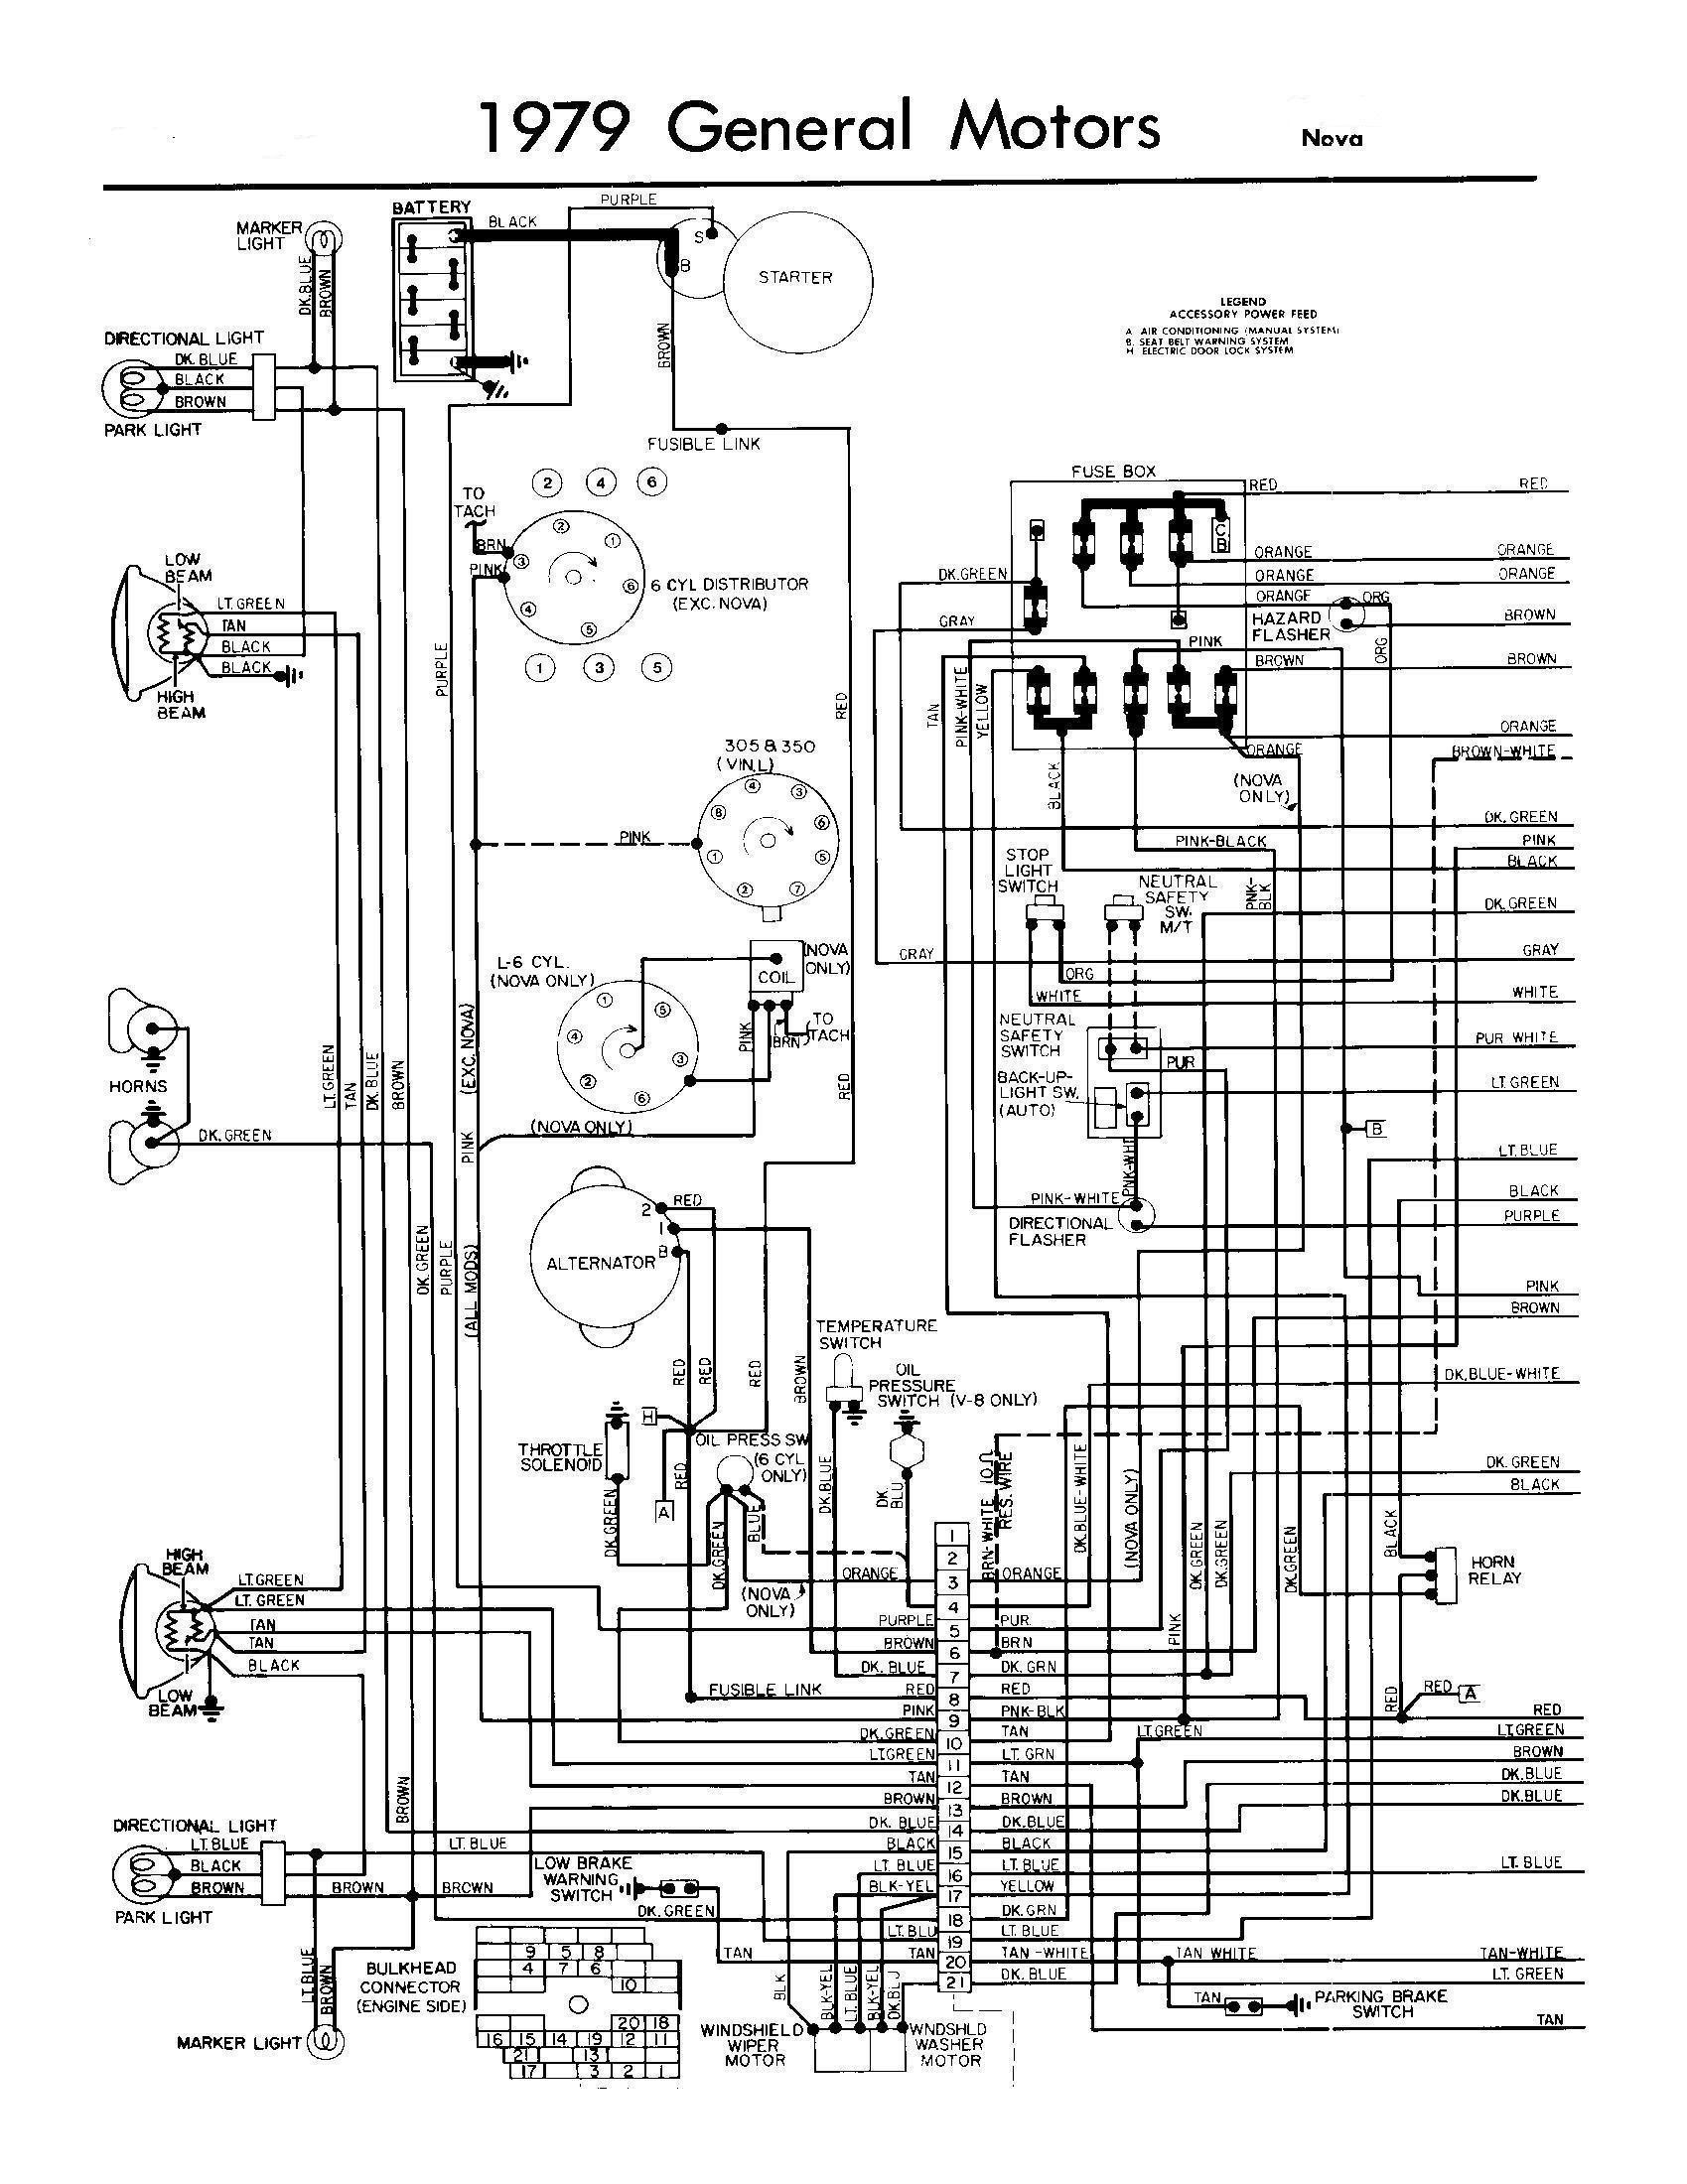 [SCHEMATICS_4FD]  5915A5 Dean Razorback Wiring Diagram - Wiring Diagram Gp | Wiring Library | Dean Zebra Pick Up Wire Diagram |  | Wiring Library